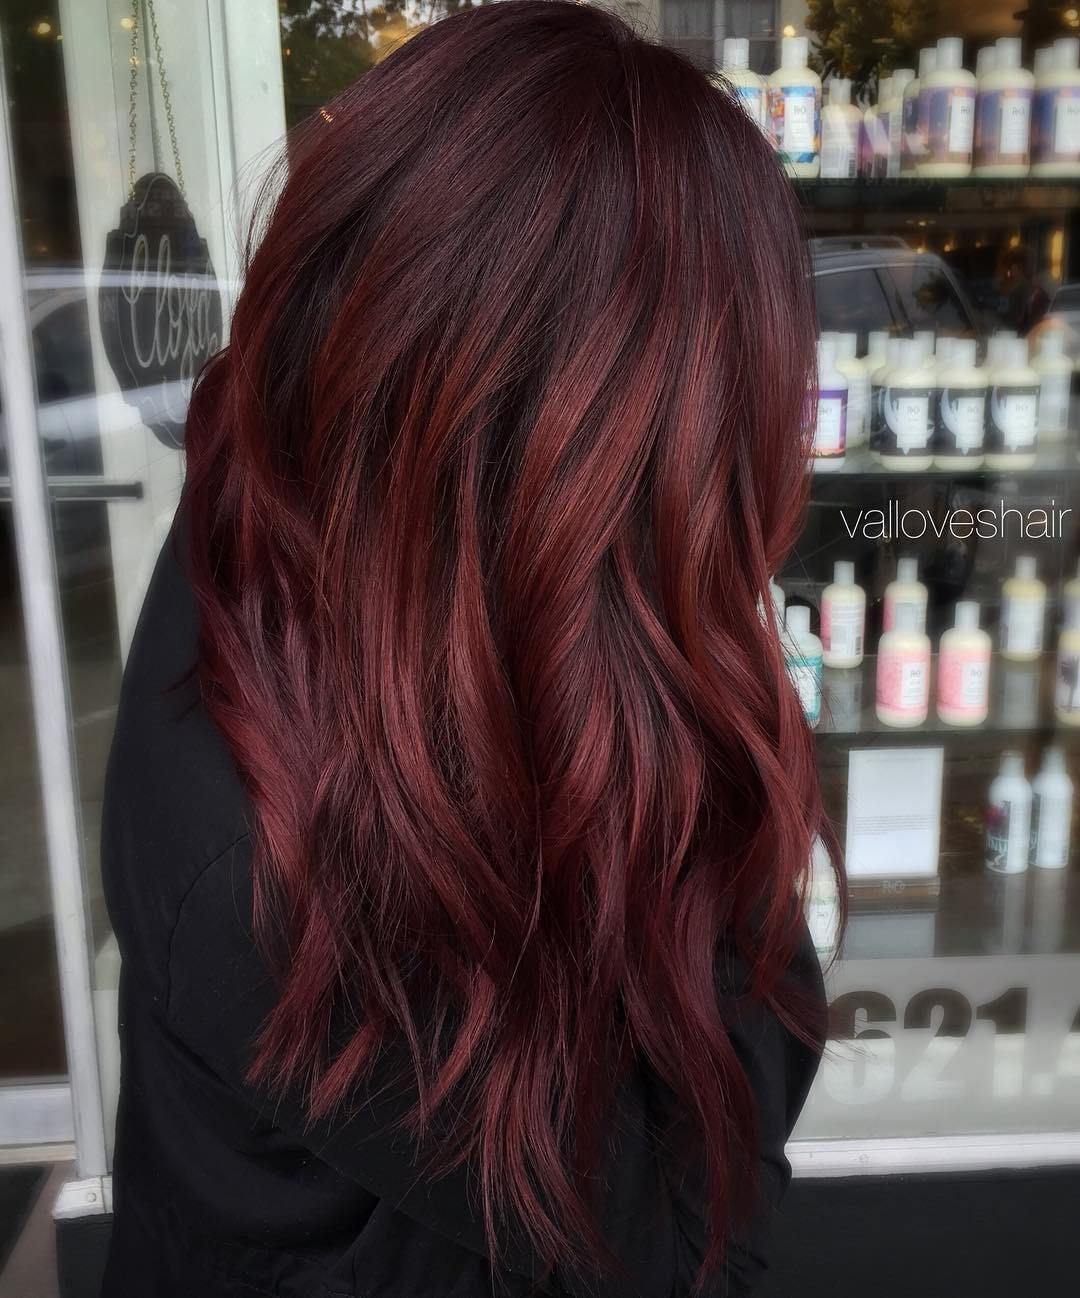 Dark red and black hair color ideas